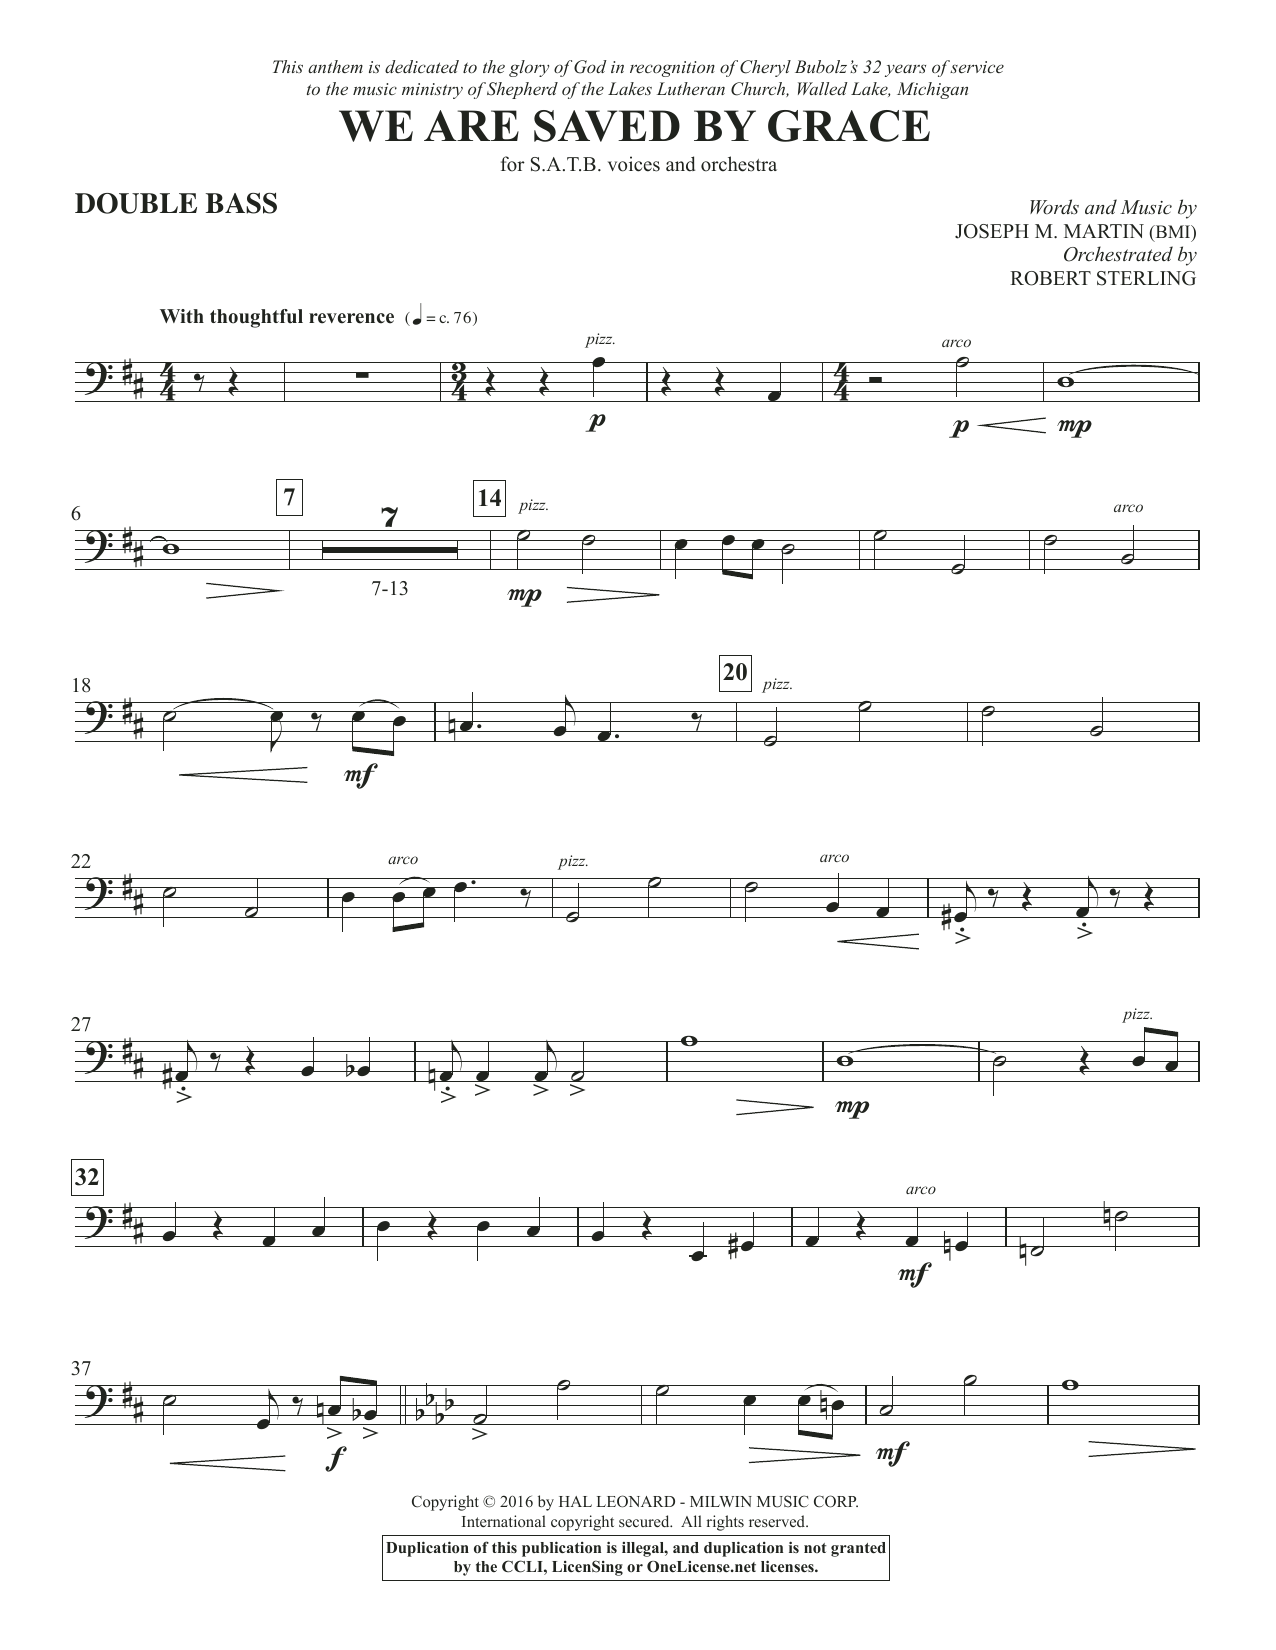 We Are Saved by Grace - Double Bass Sheet Music